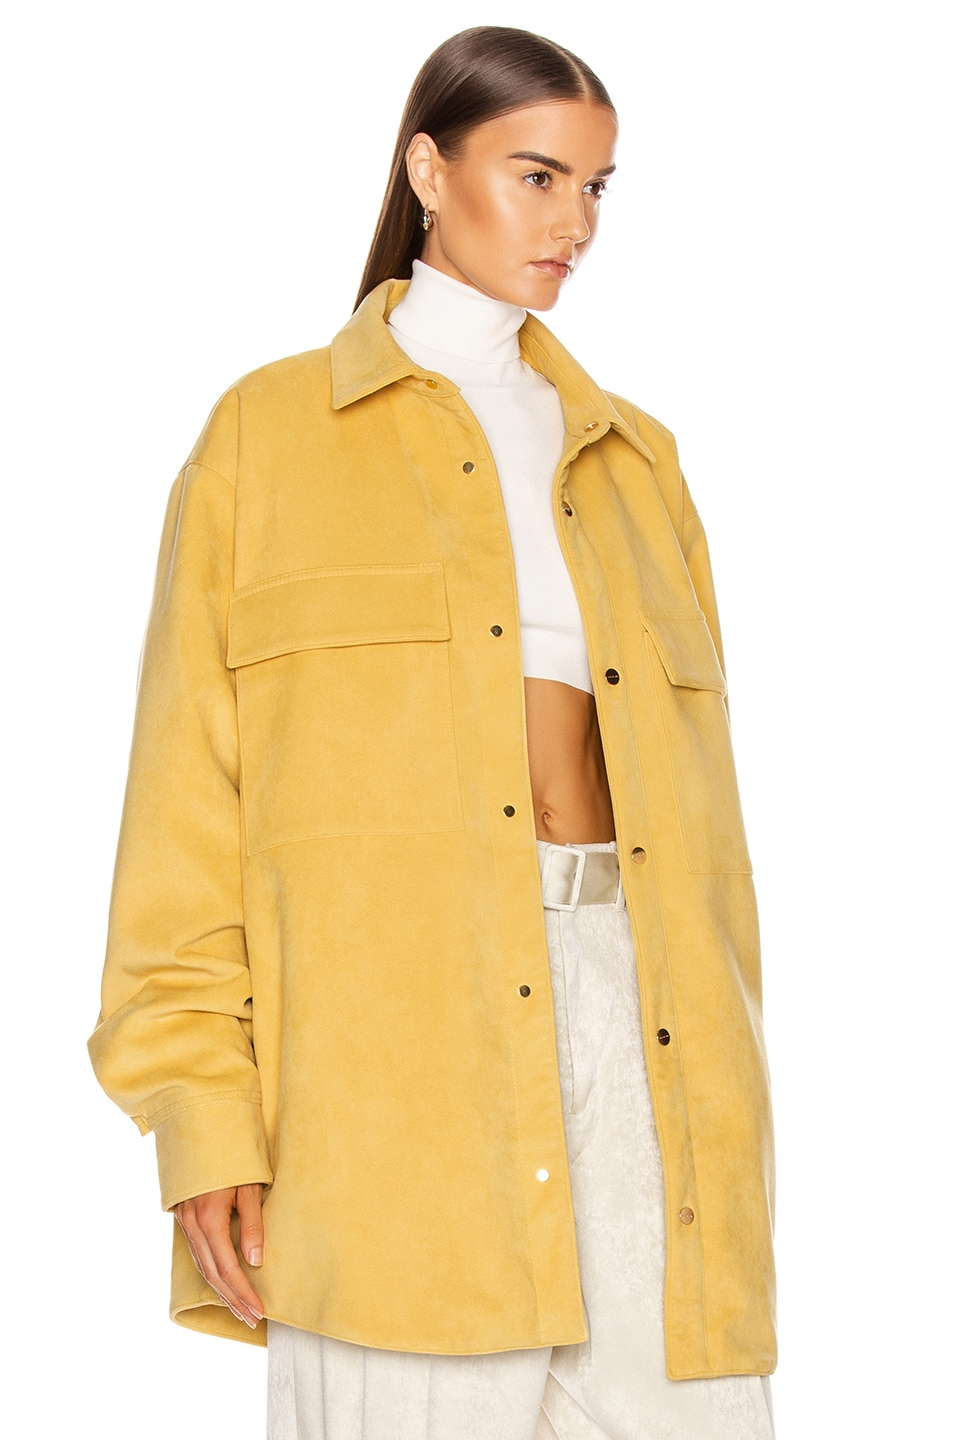 Image 3 of Fear of God Suede Shirt Jacket in Garden Glove Yellow